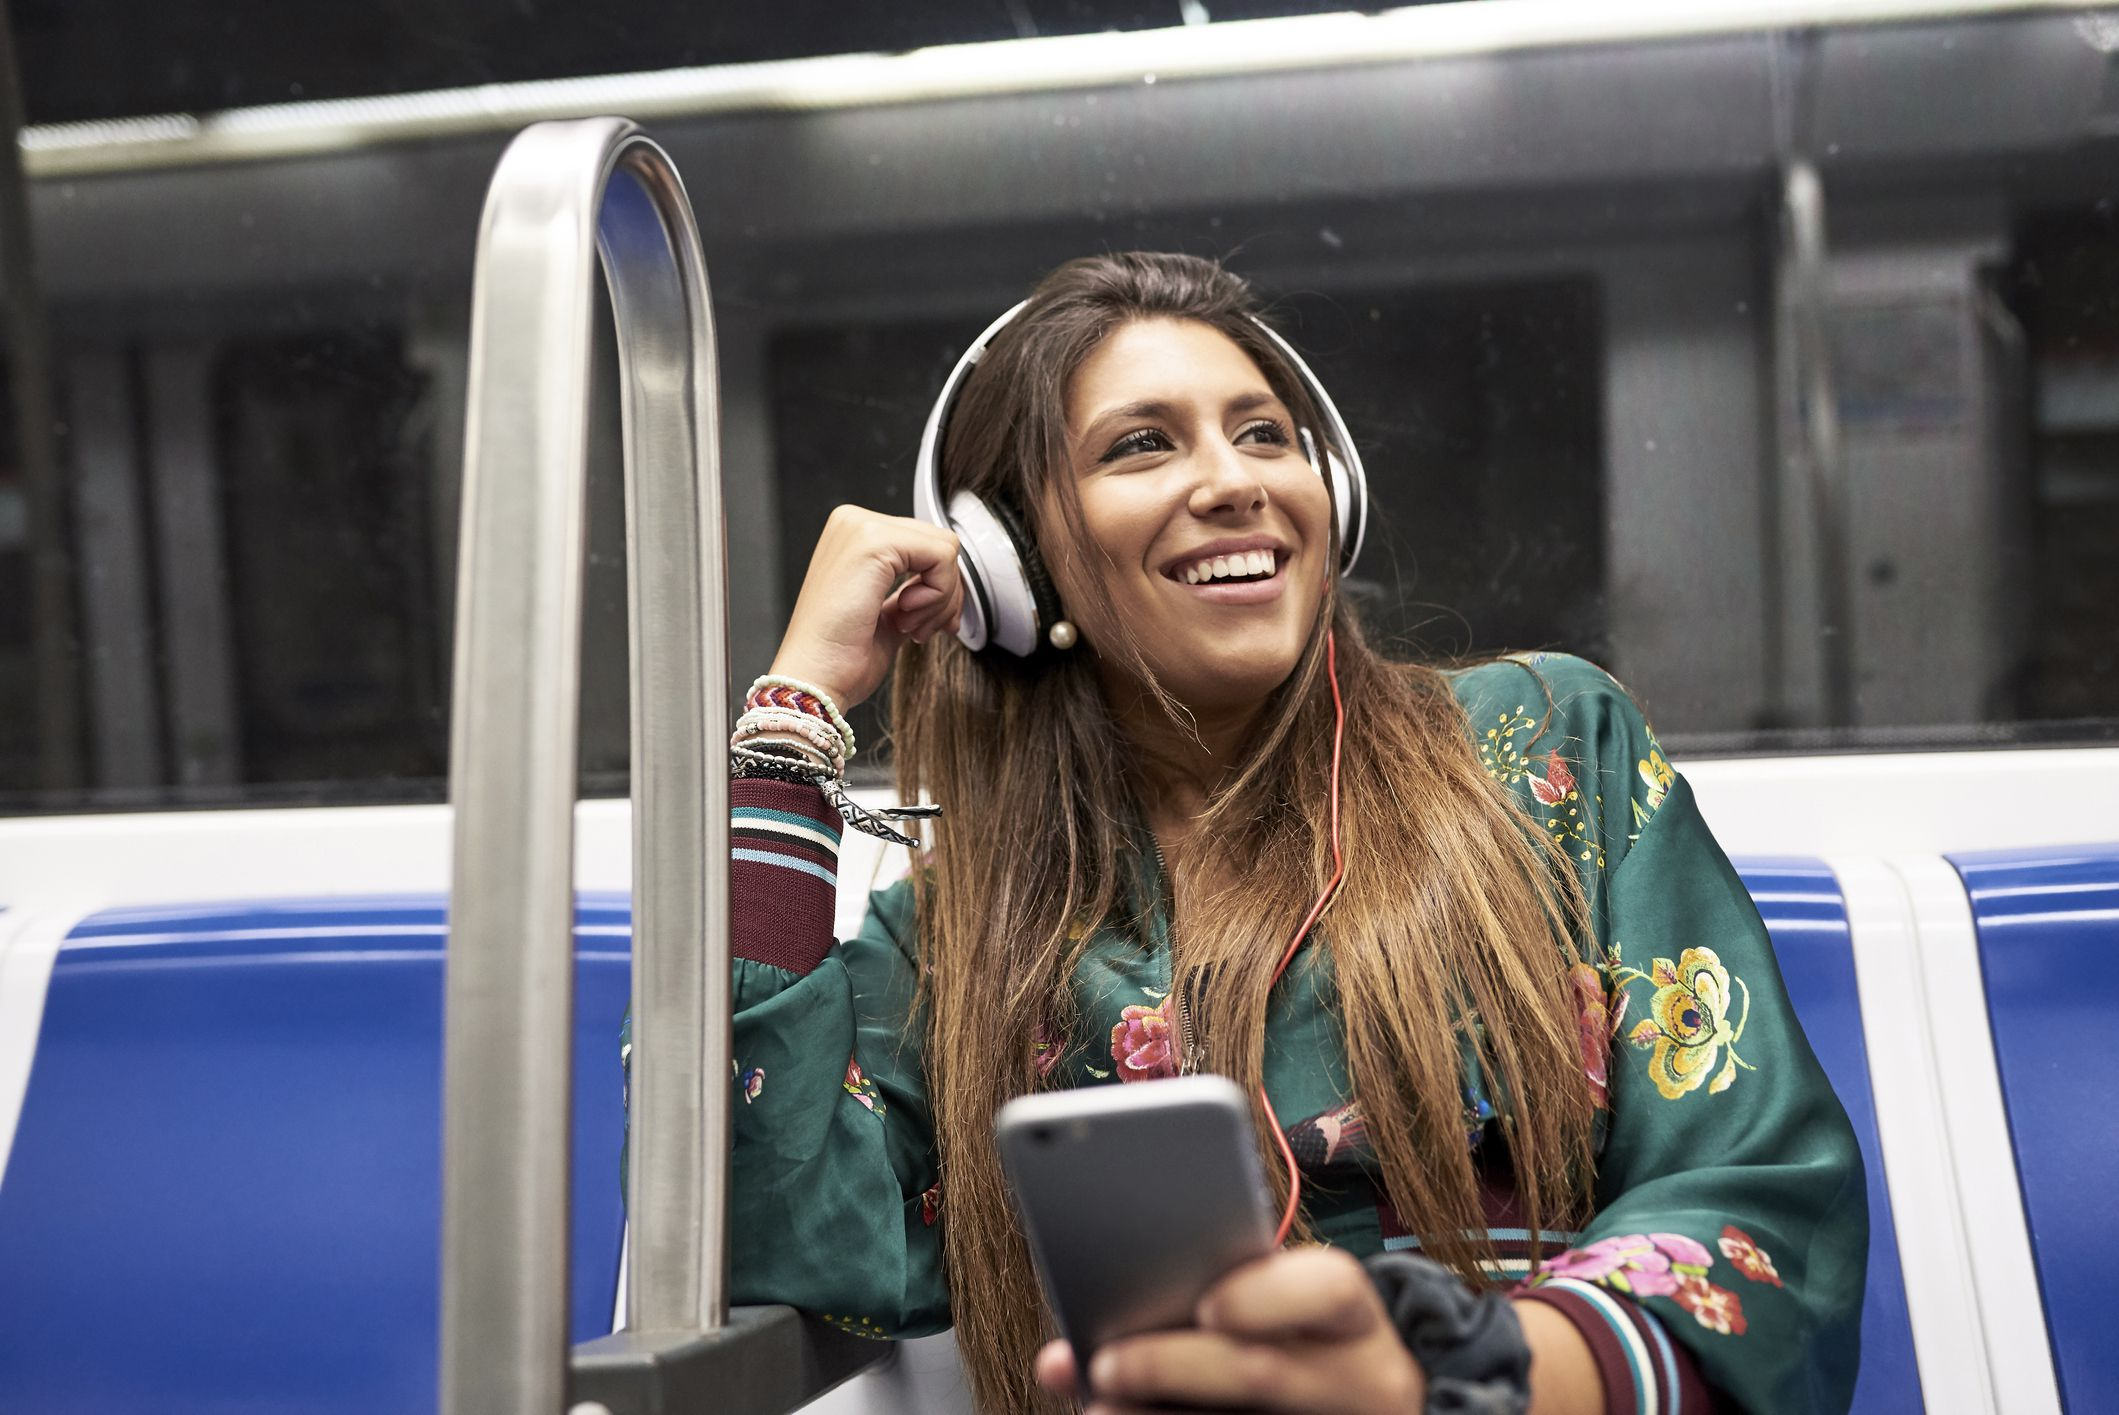 20 Best Motivational Podcasts of 2020